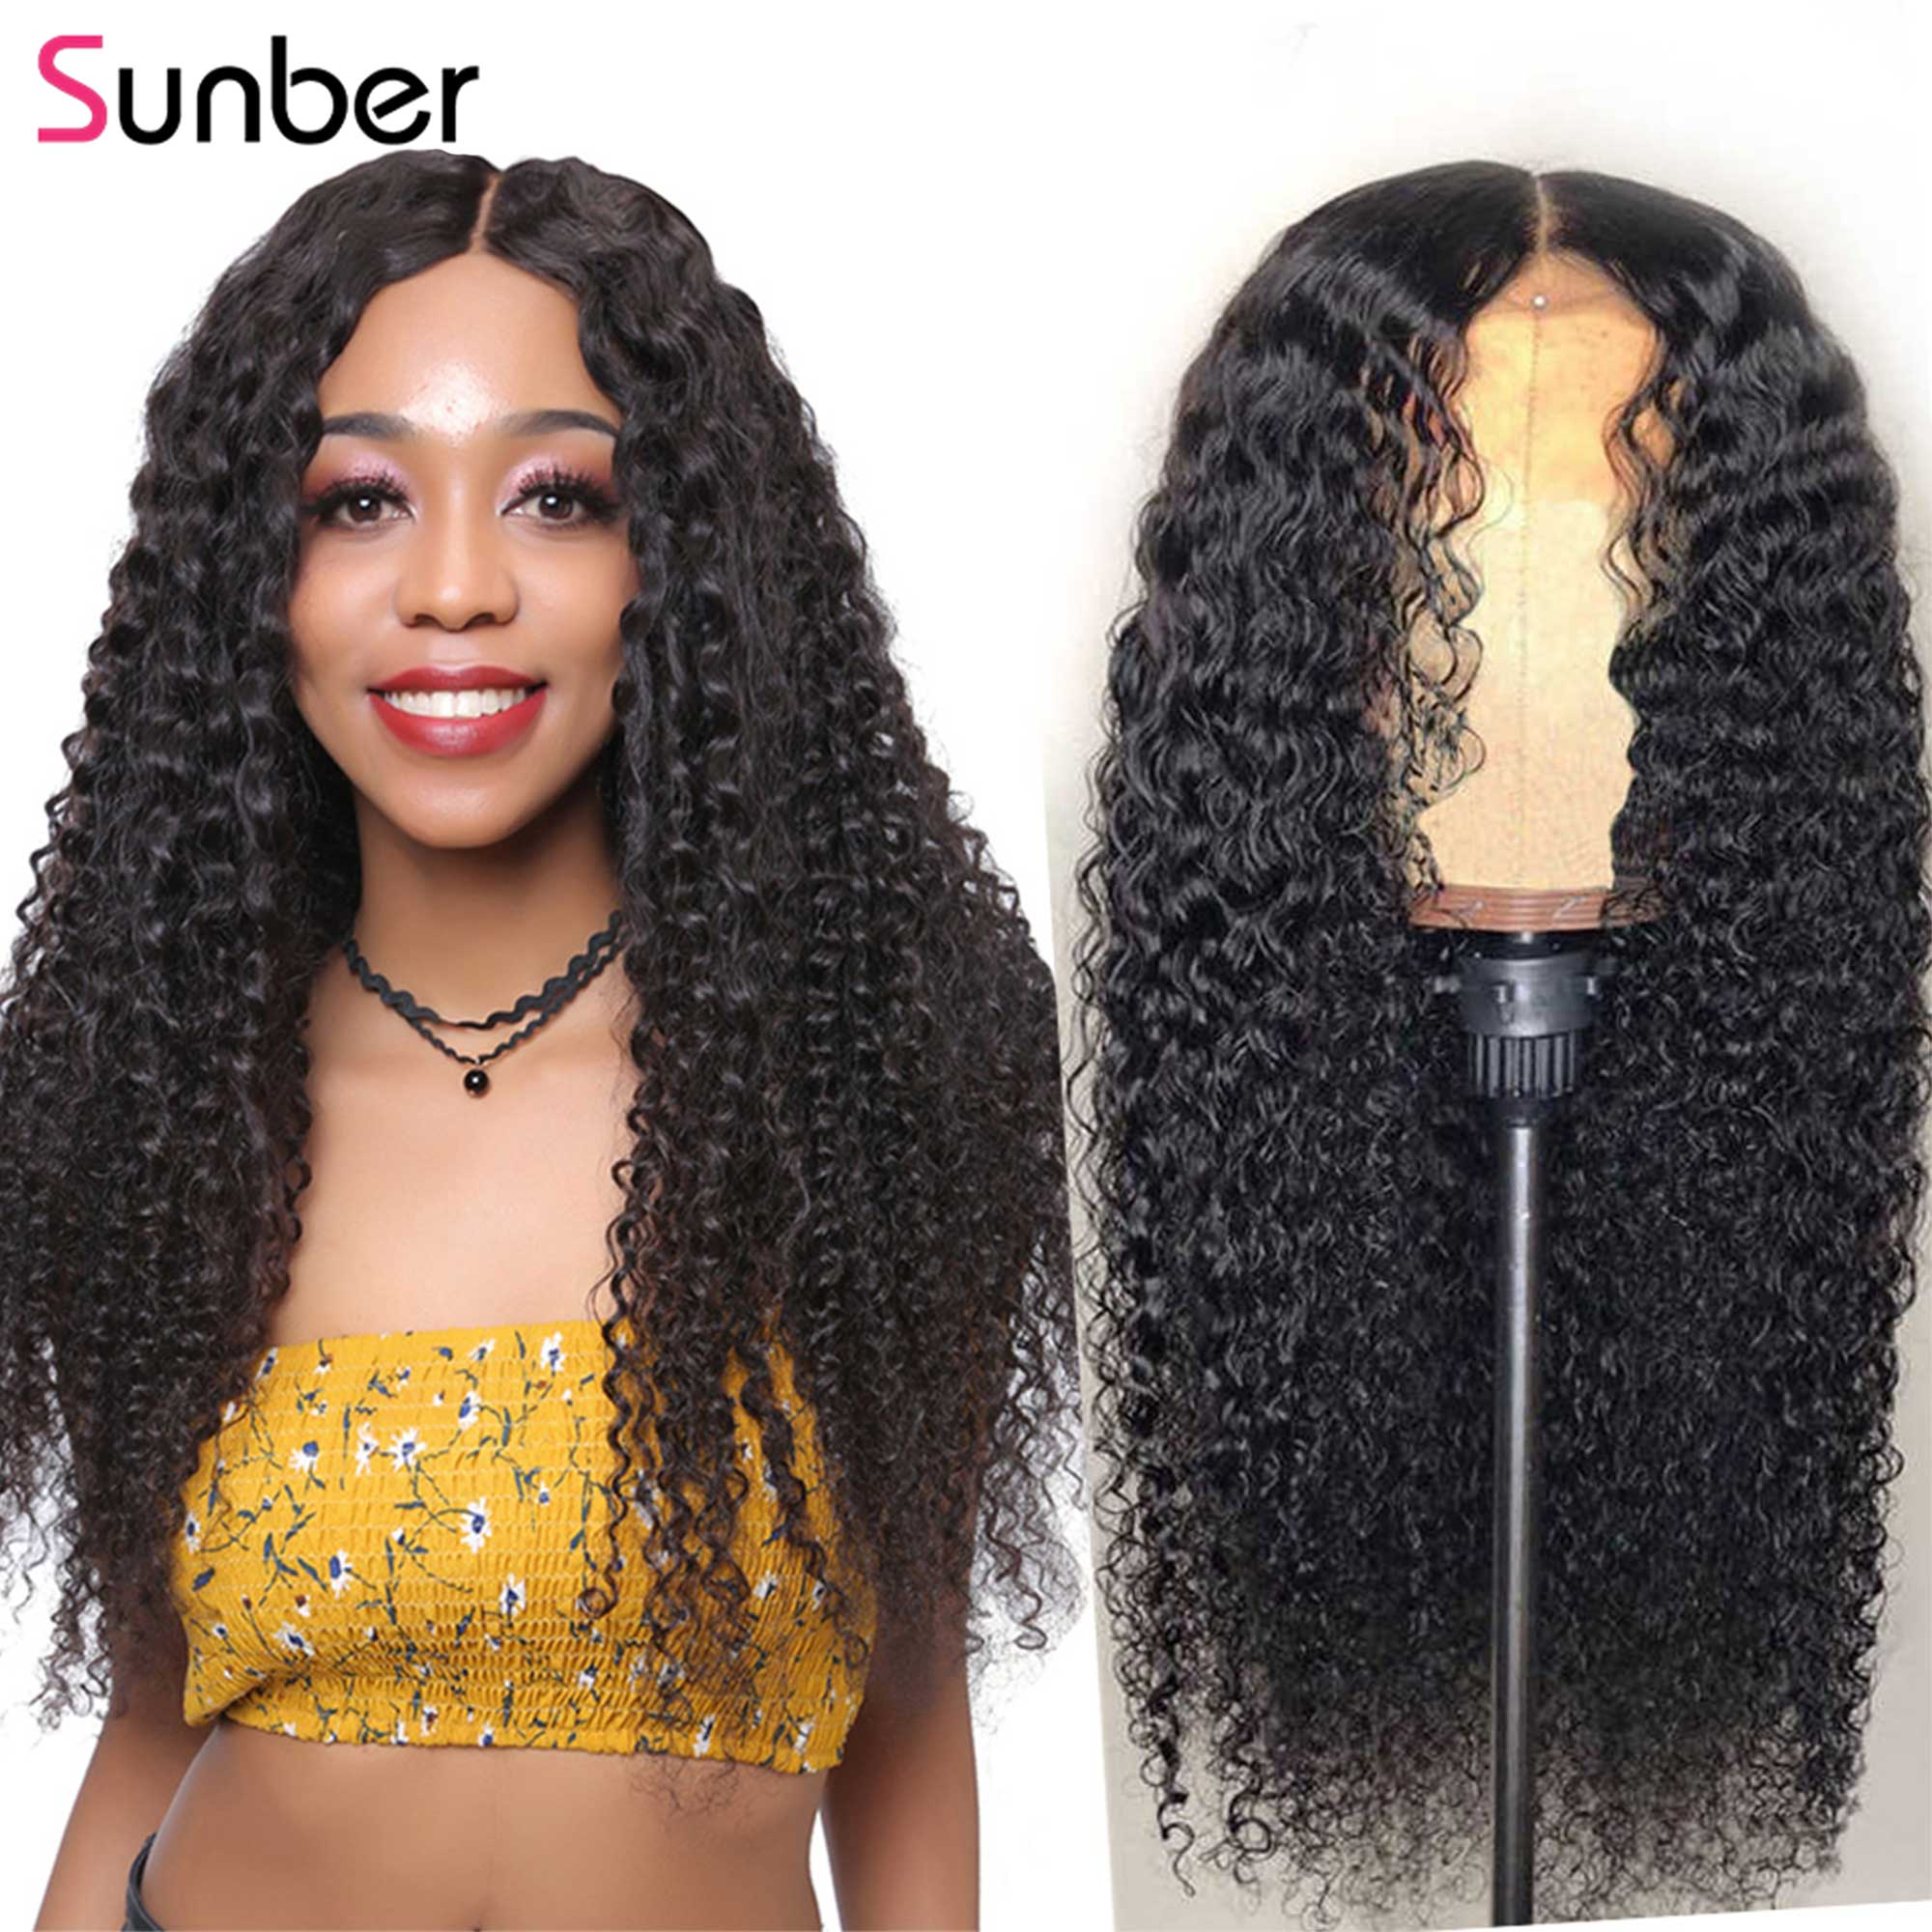 Sunber Peruvian Deep Curly Lace Wigs Pre Plucked With Baby Hair 13x4 6 150 180 density